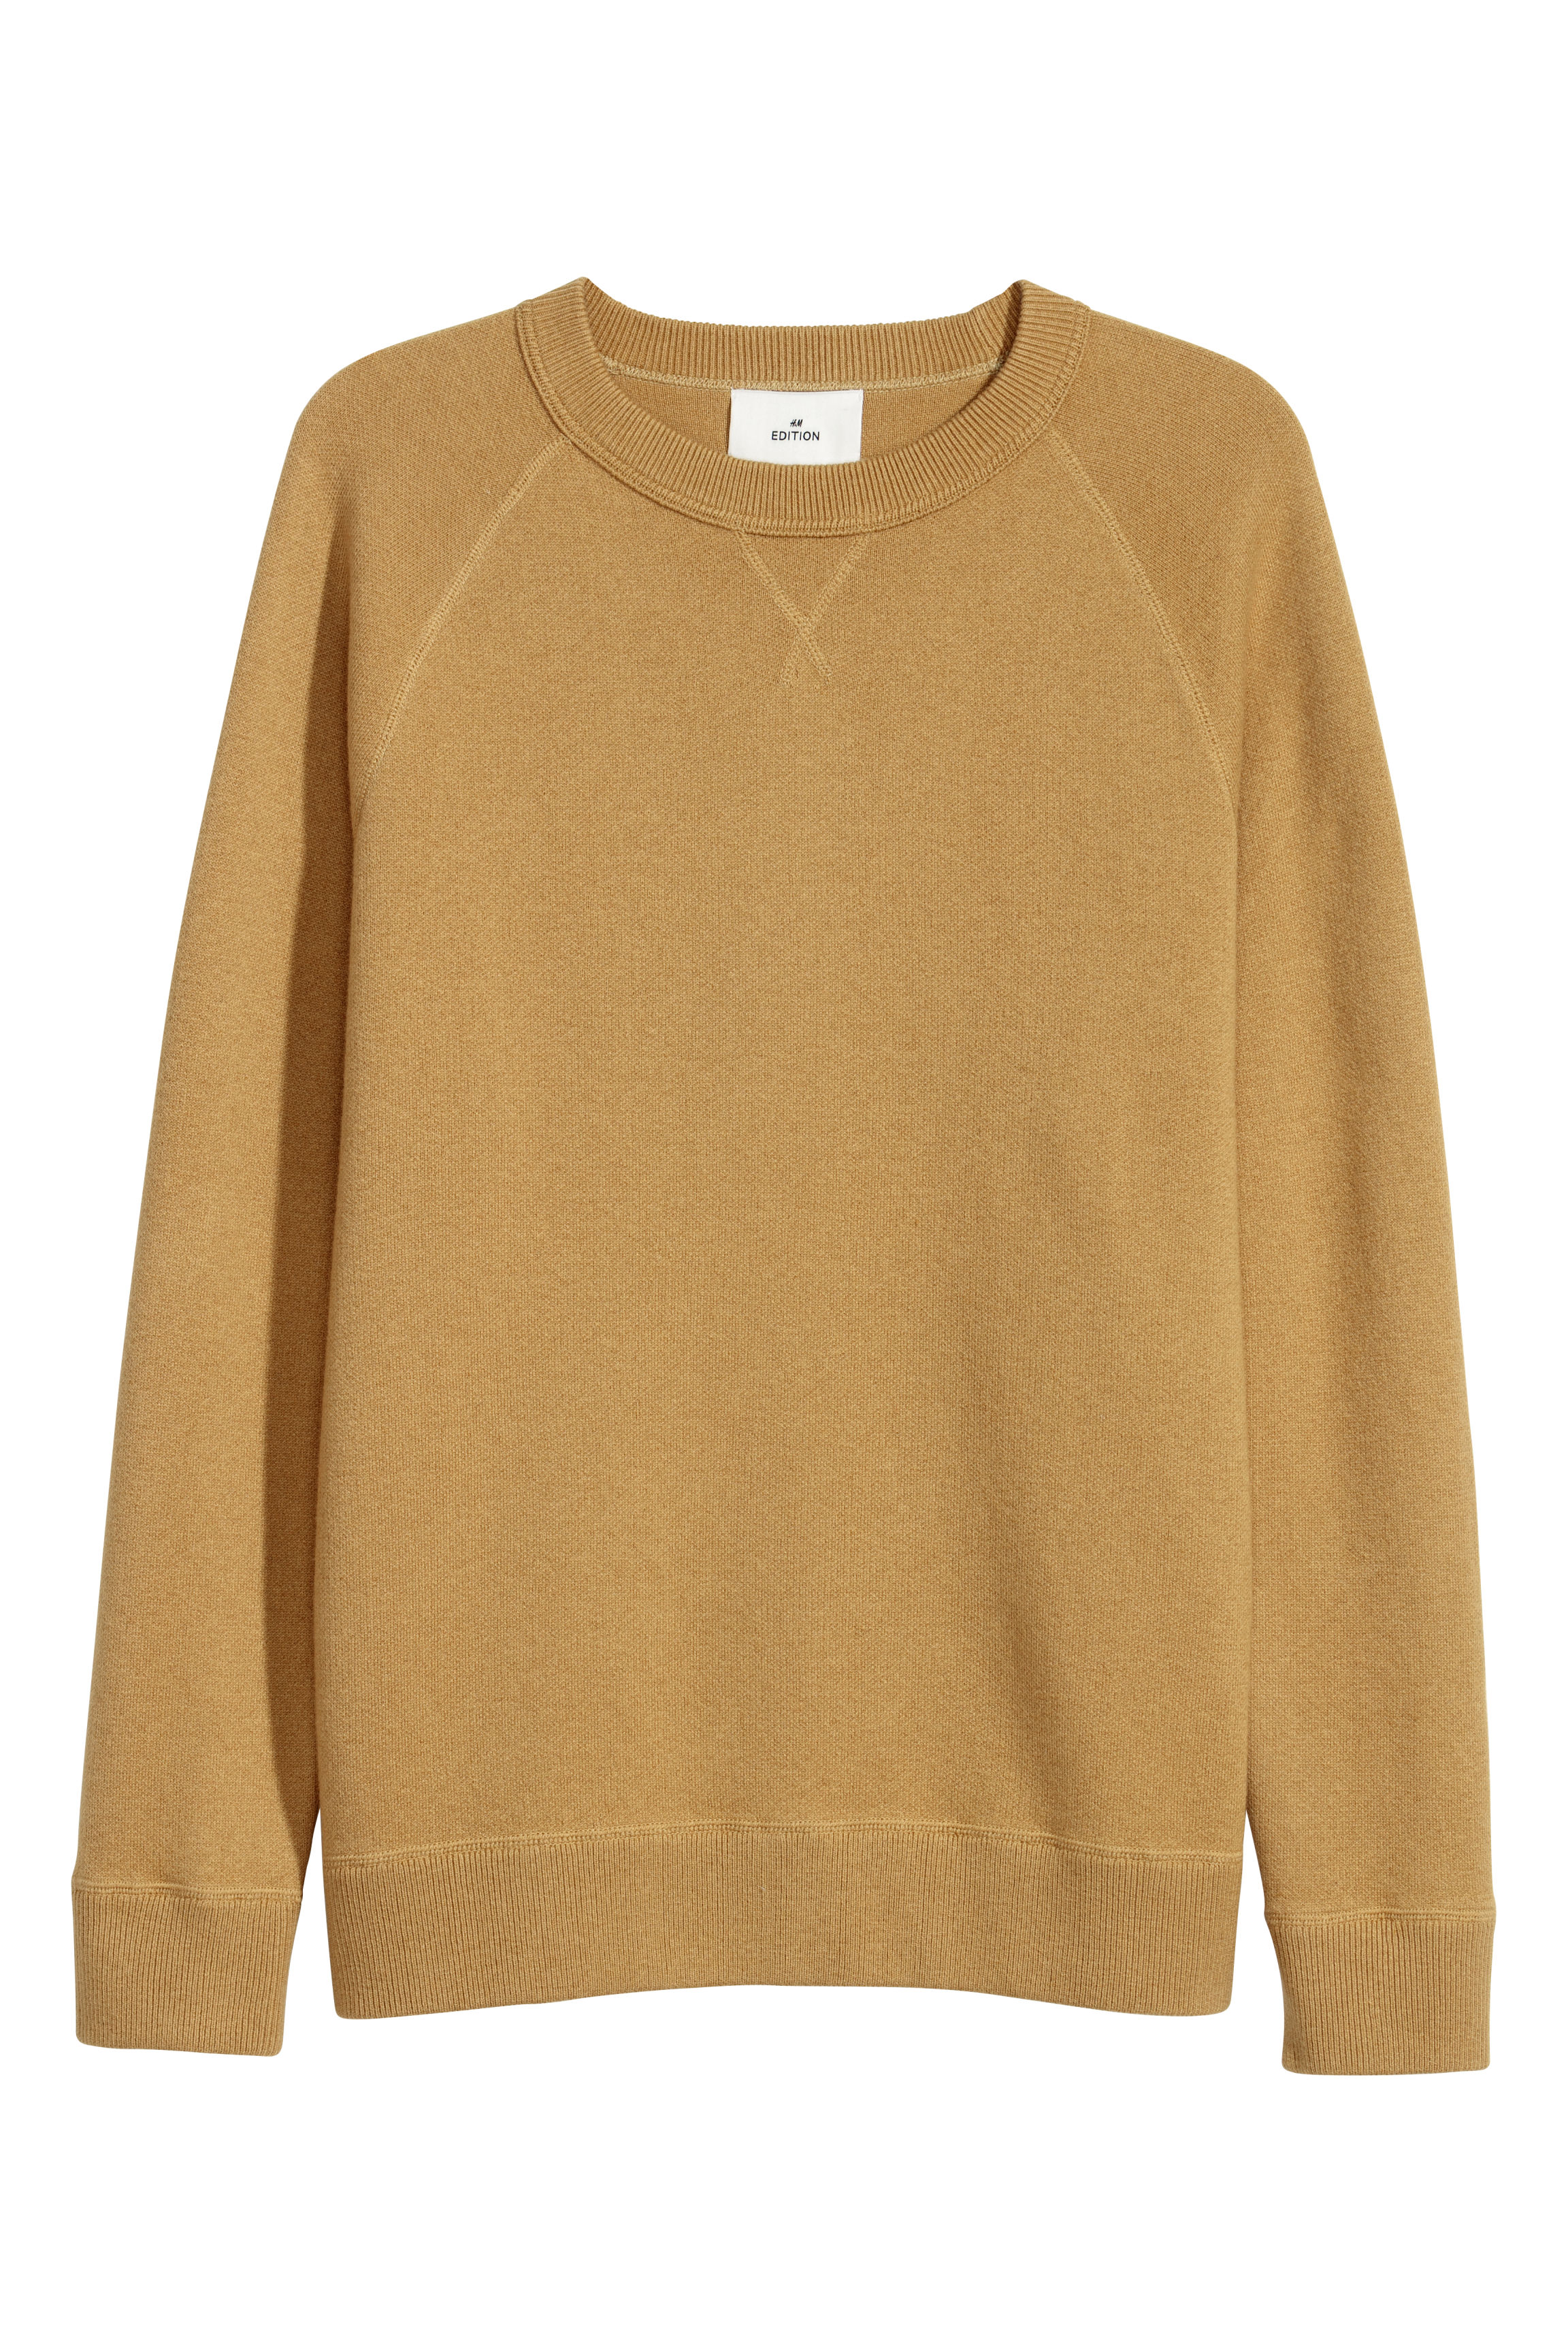 H&M Edition Dark yellow Wool-blend sweatshirt